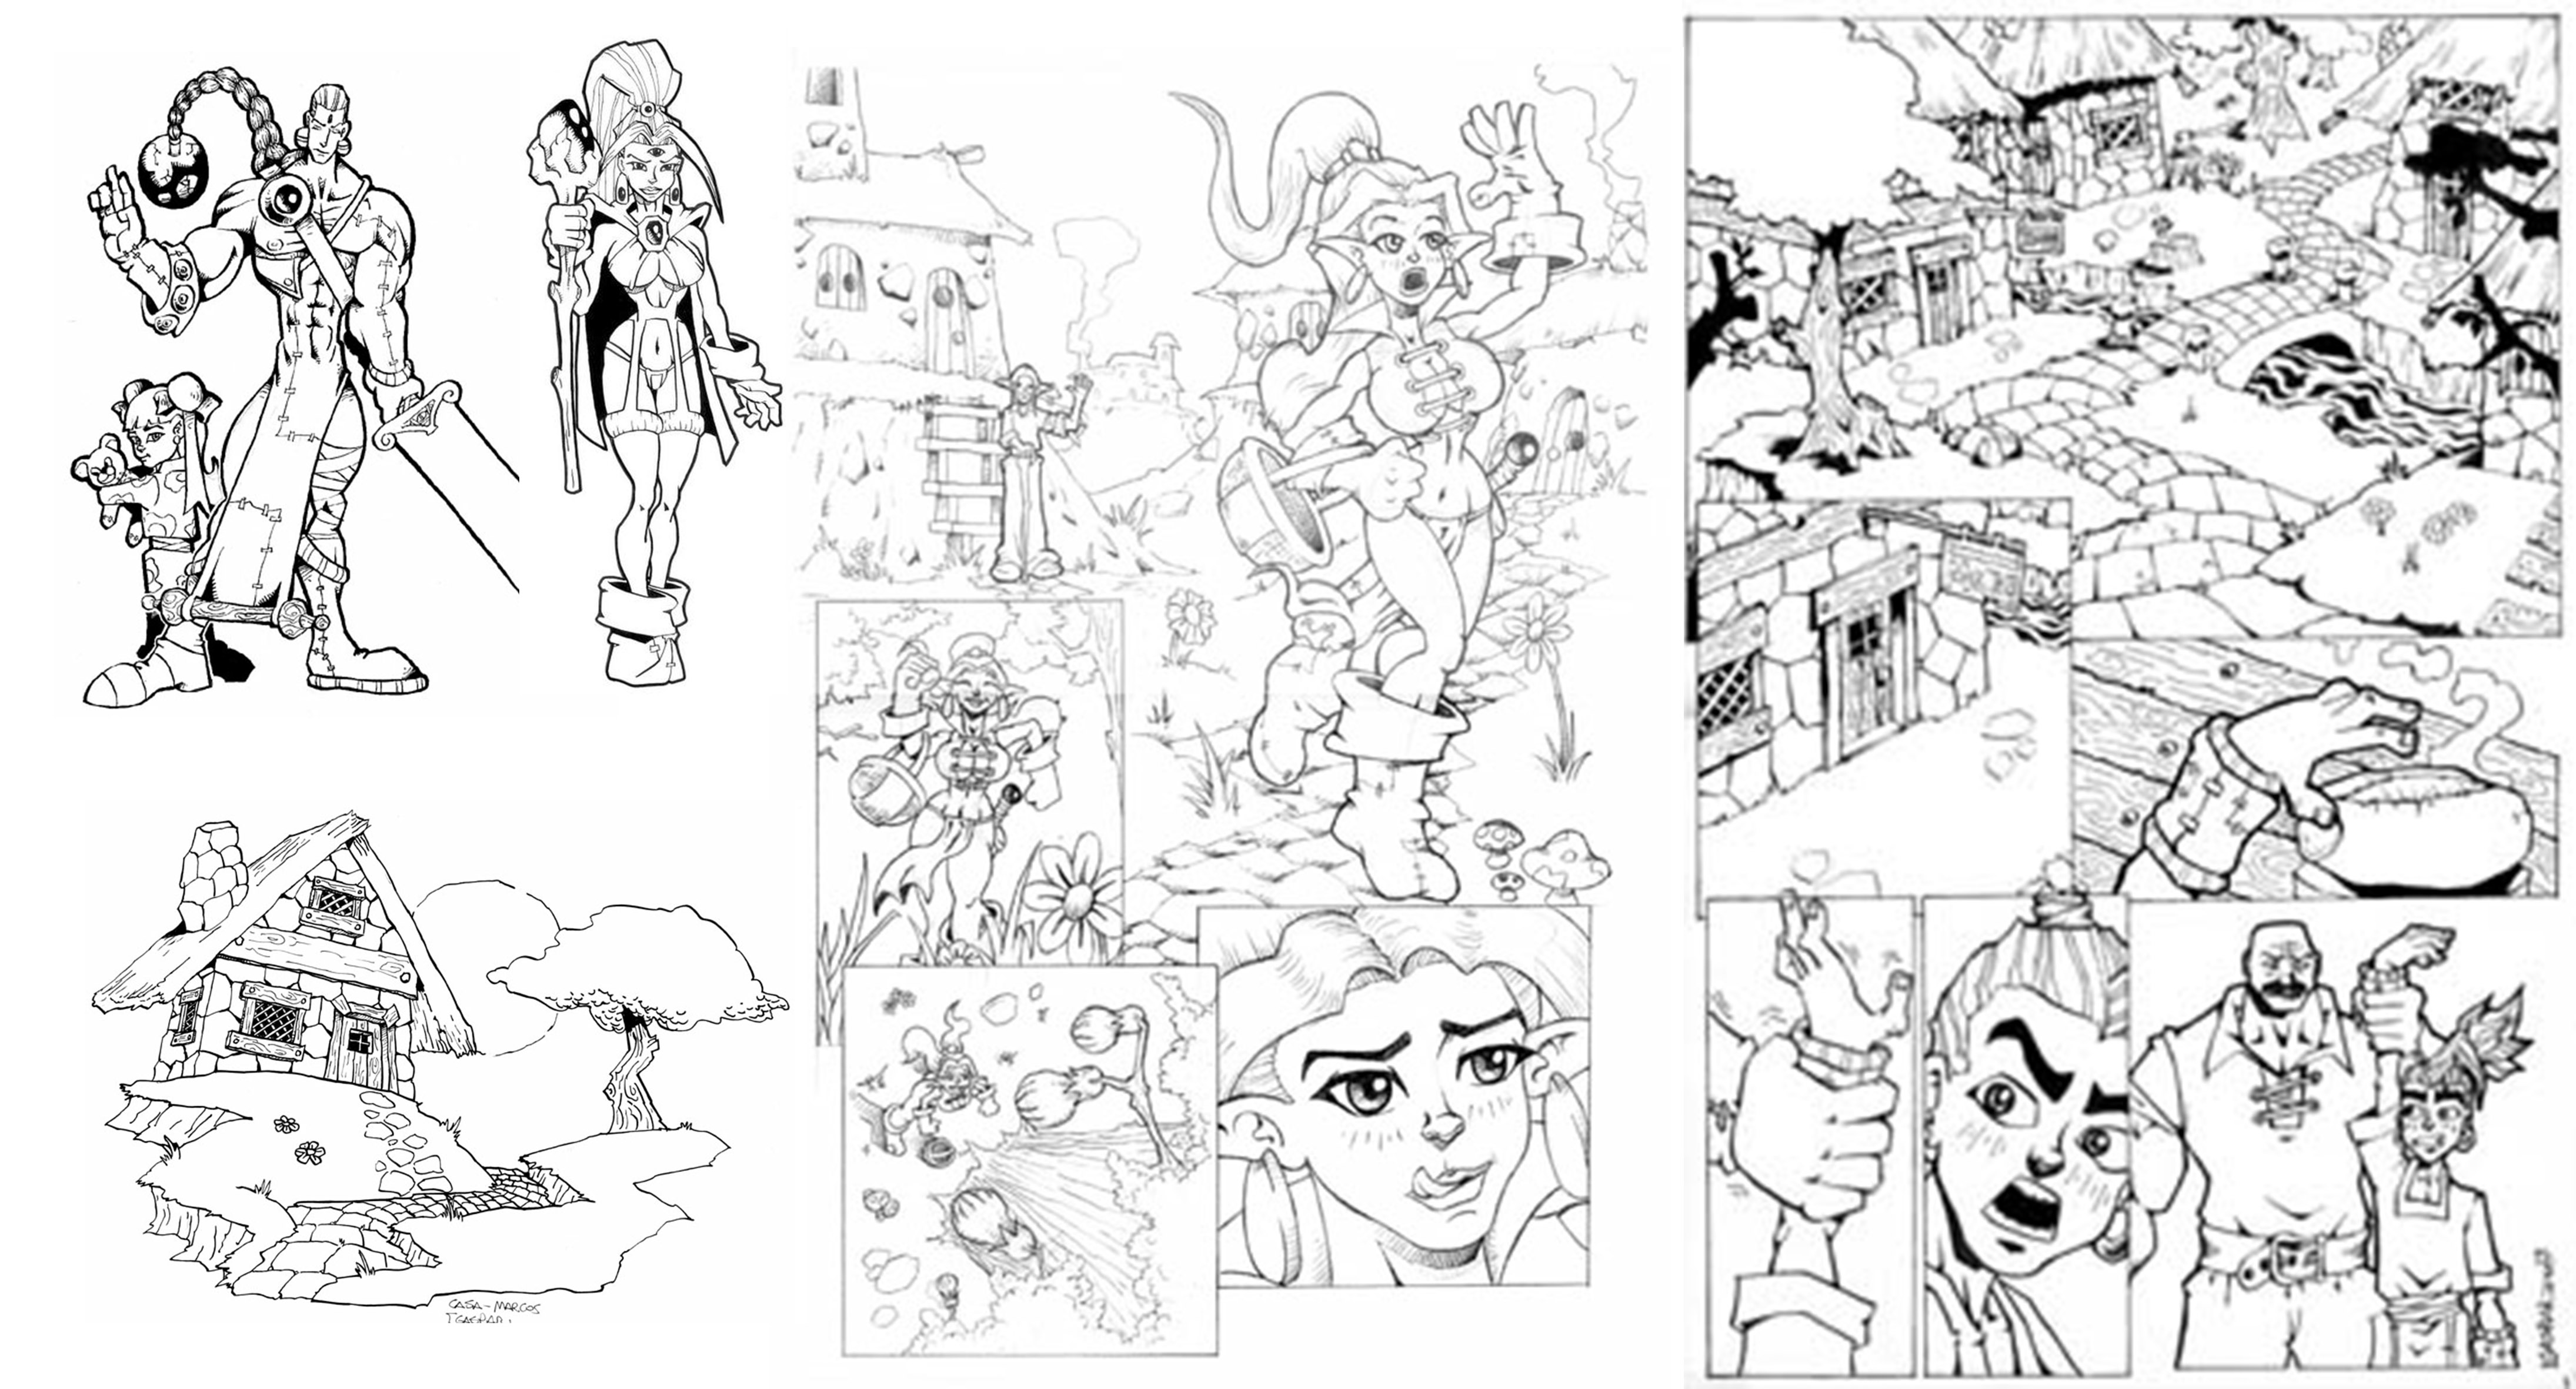 pencil and ink a comic book page of 3 panels